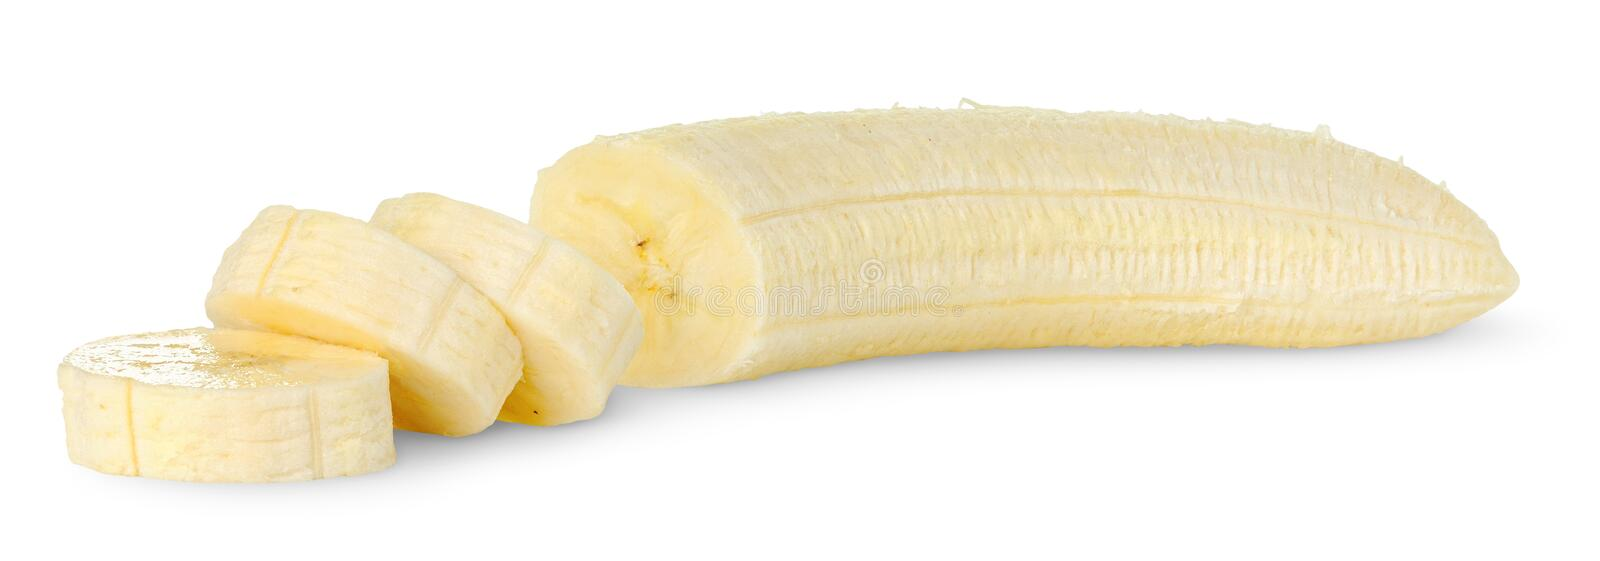 Isolated cut banana royalty free stock photos